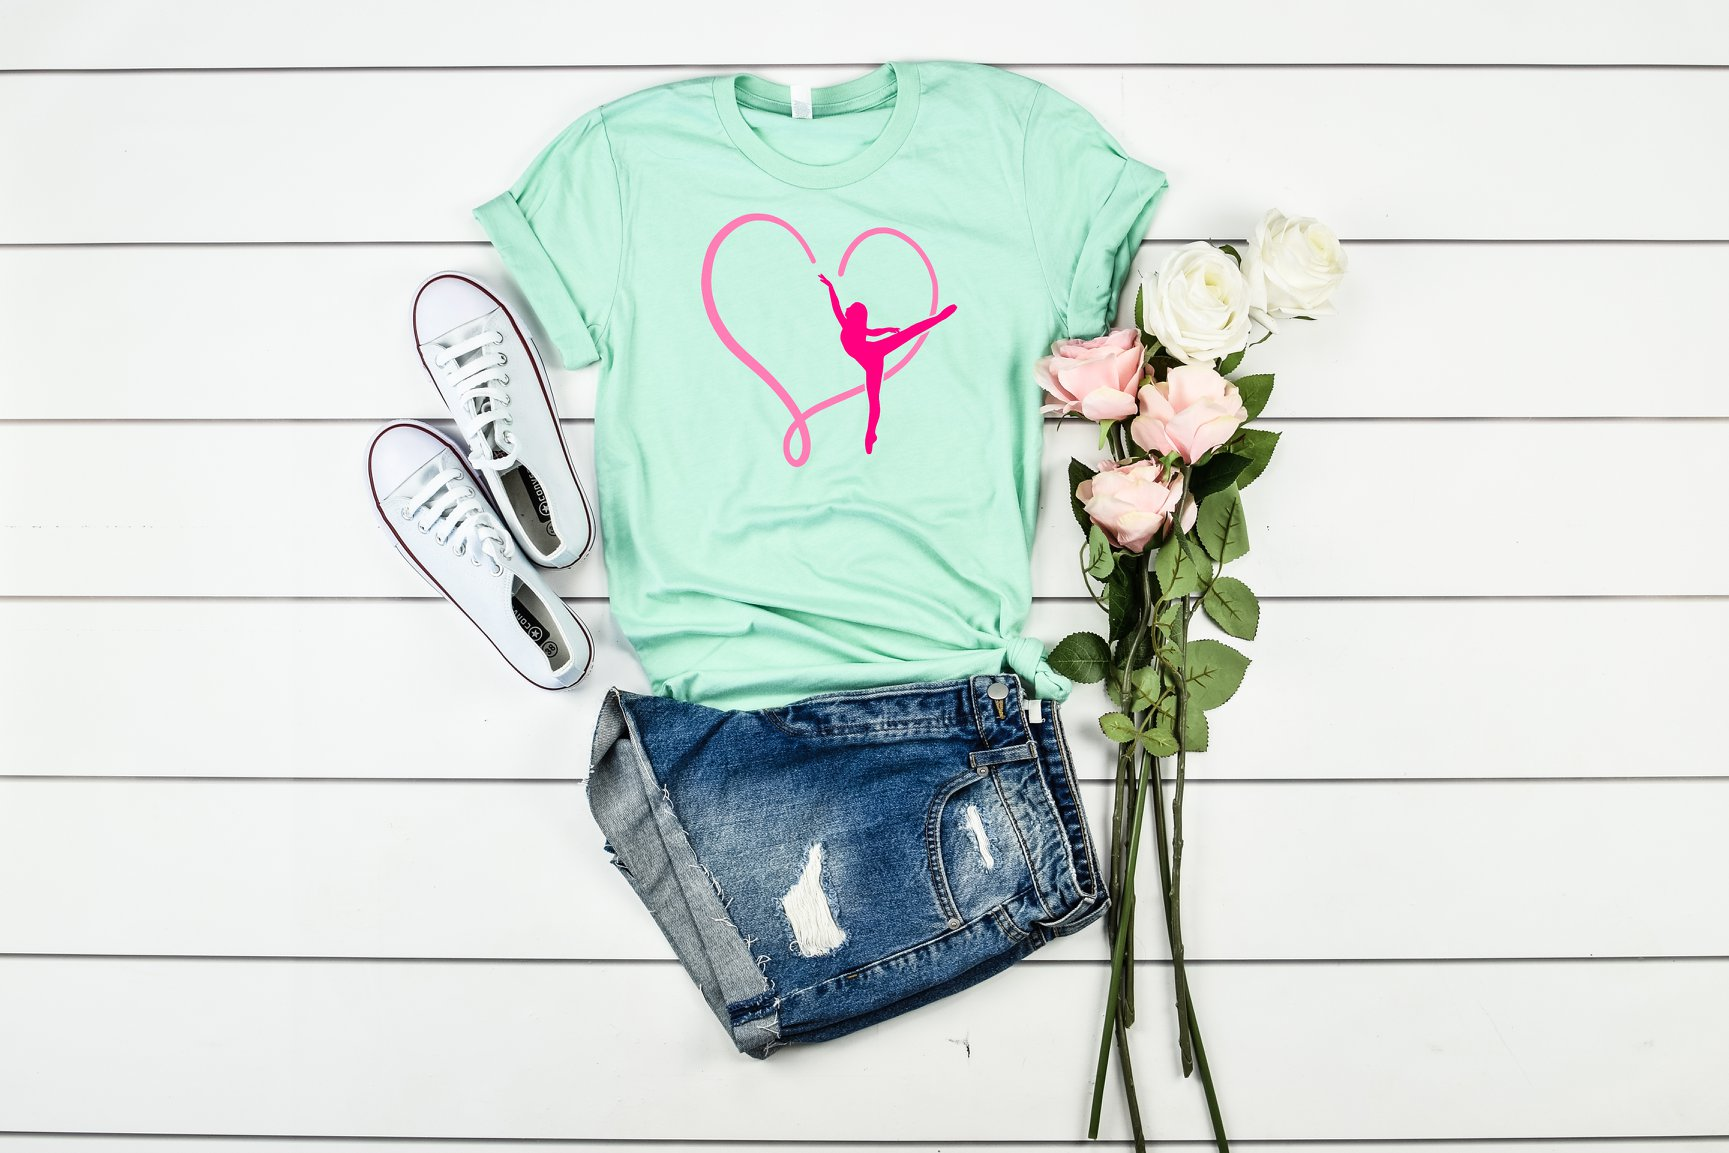 Dancer's Heart Tee